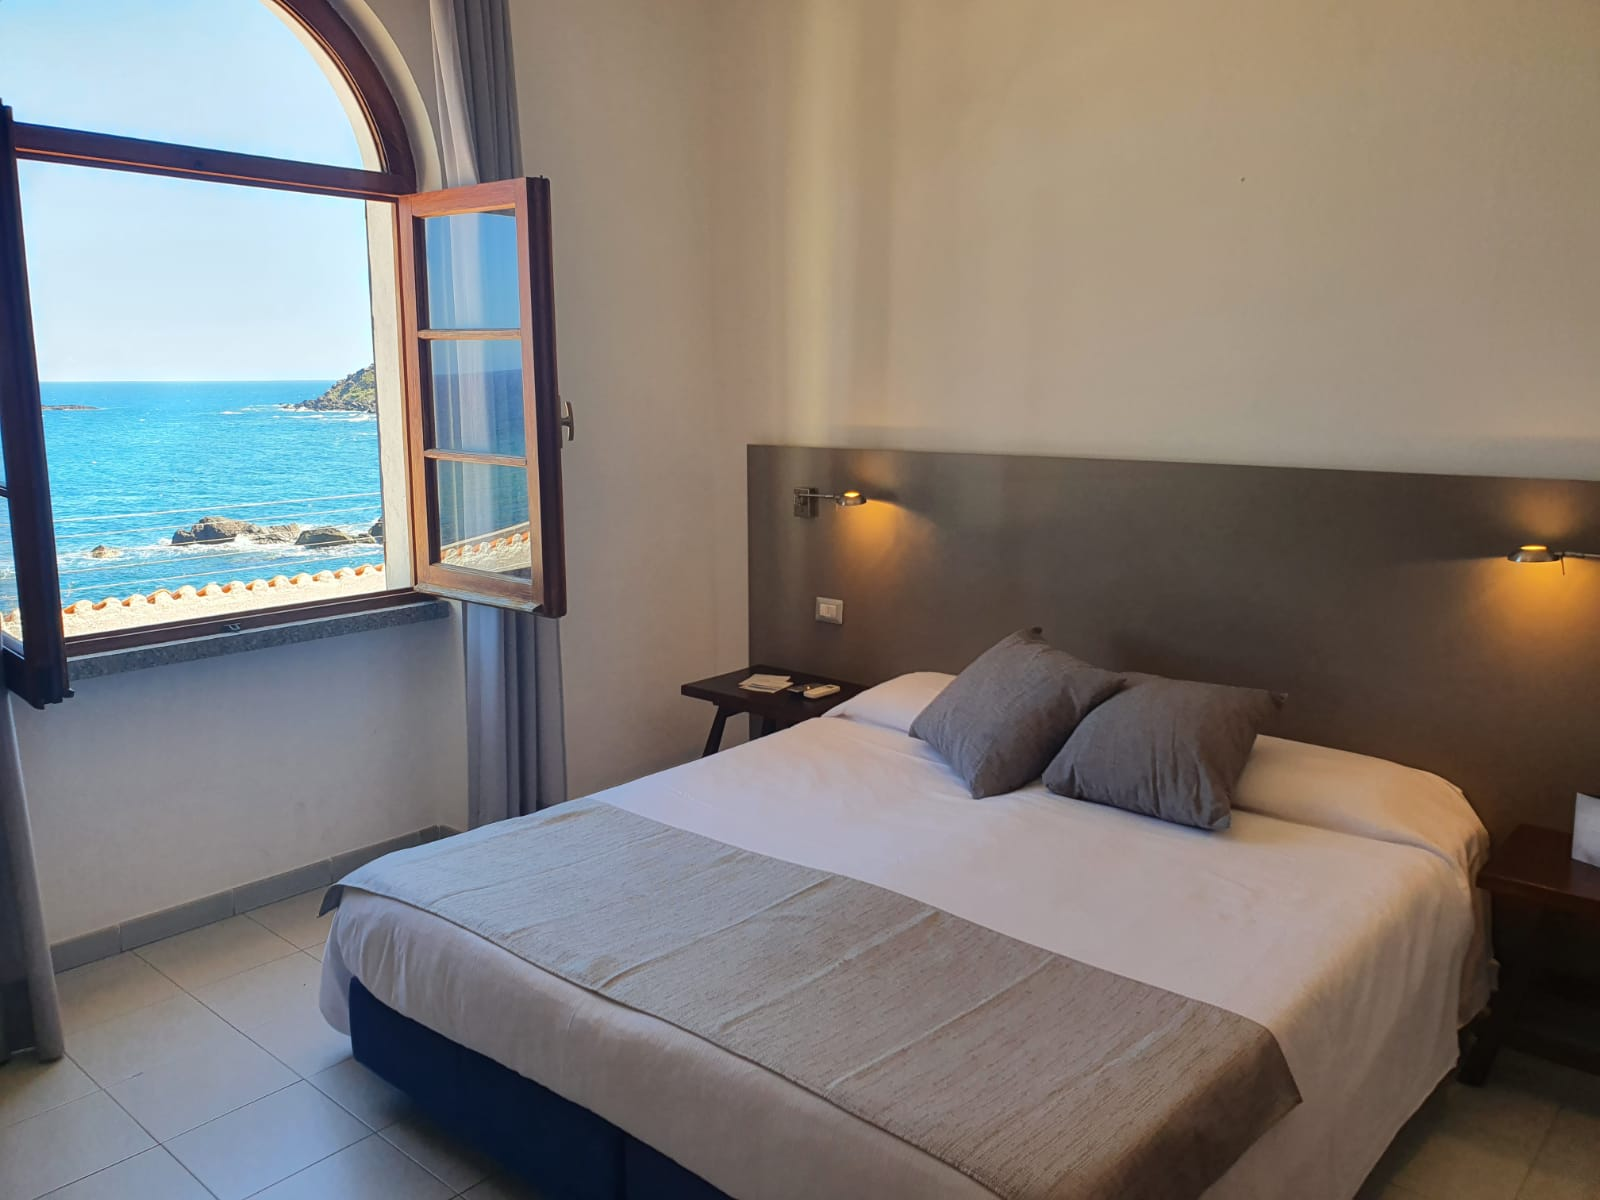 rooms-superior-hotel-castelsardo-sardinia-on-the-sea